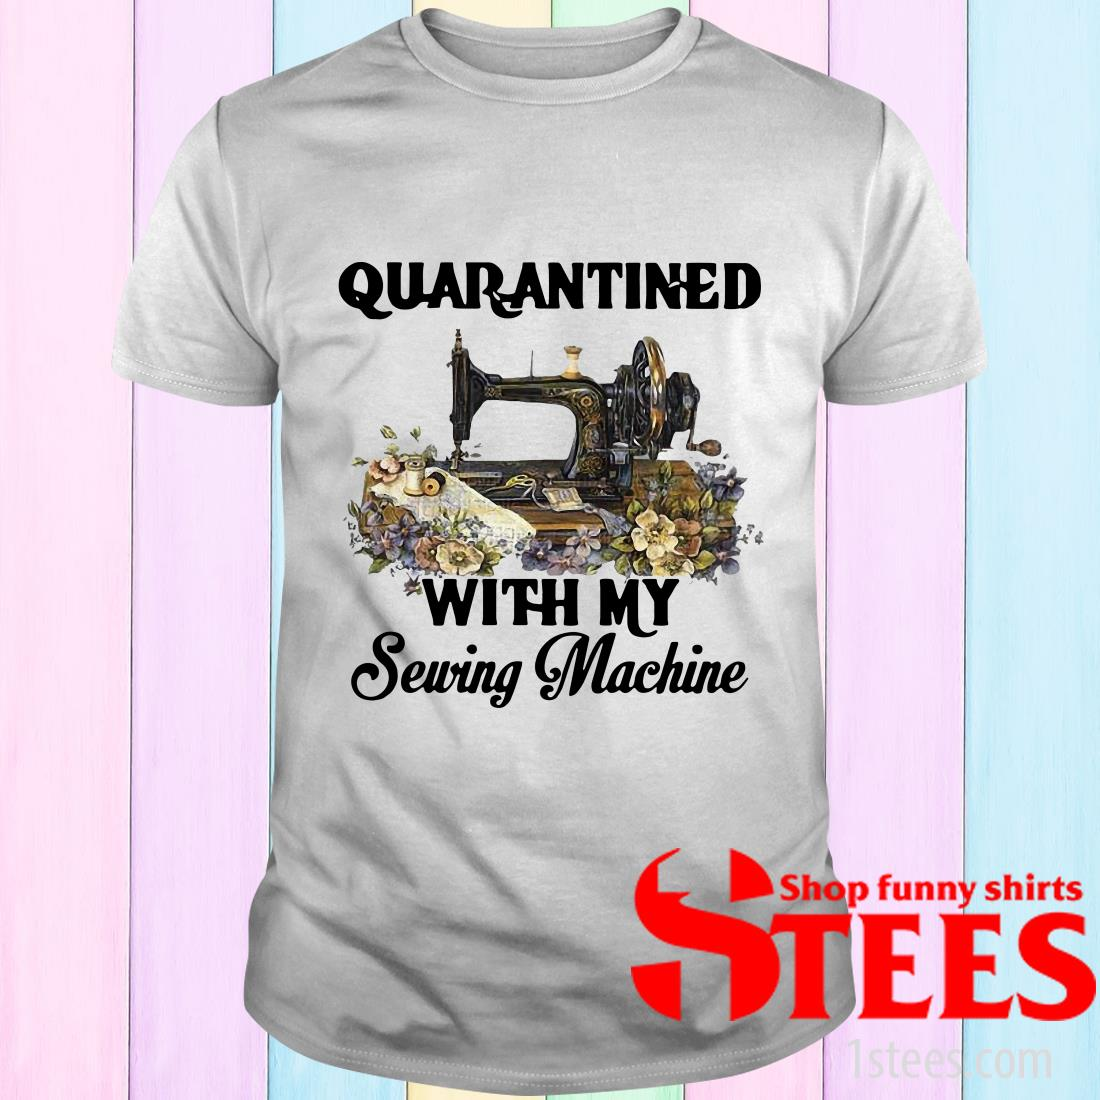 Quarantined With My Sewing Machine T-Shirt